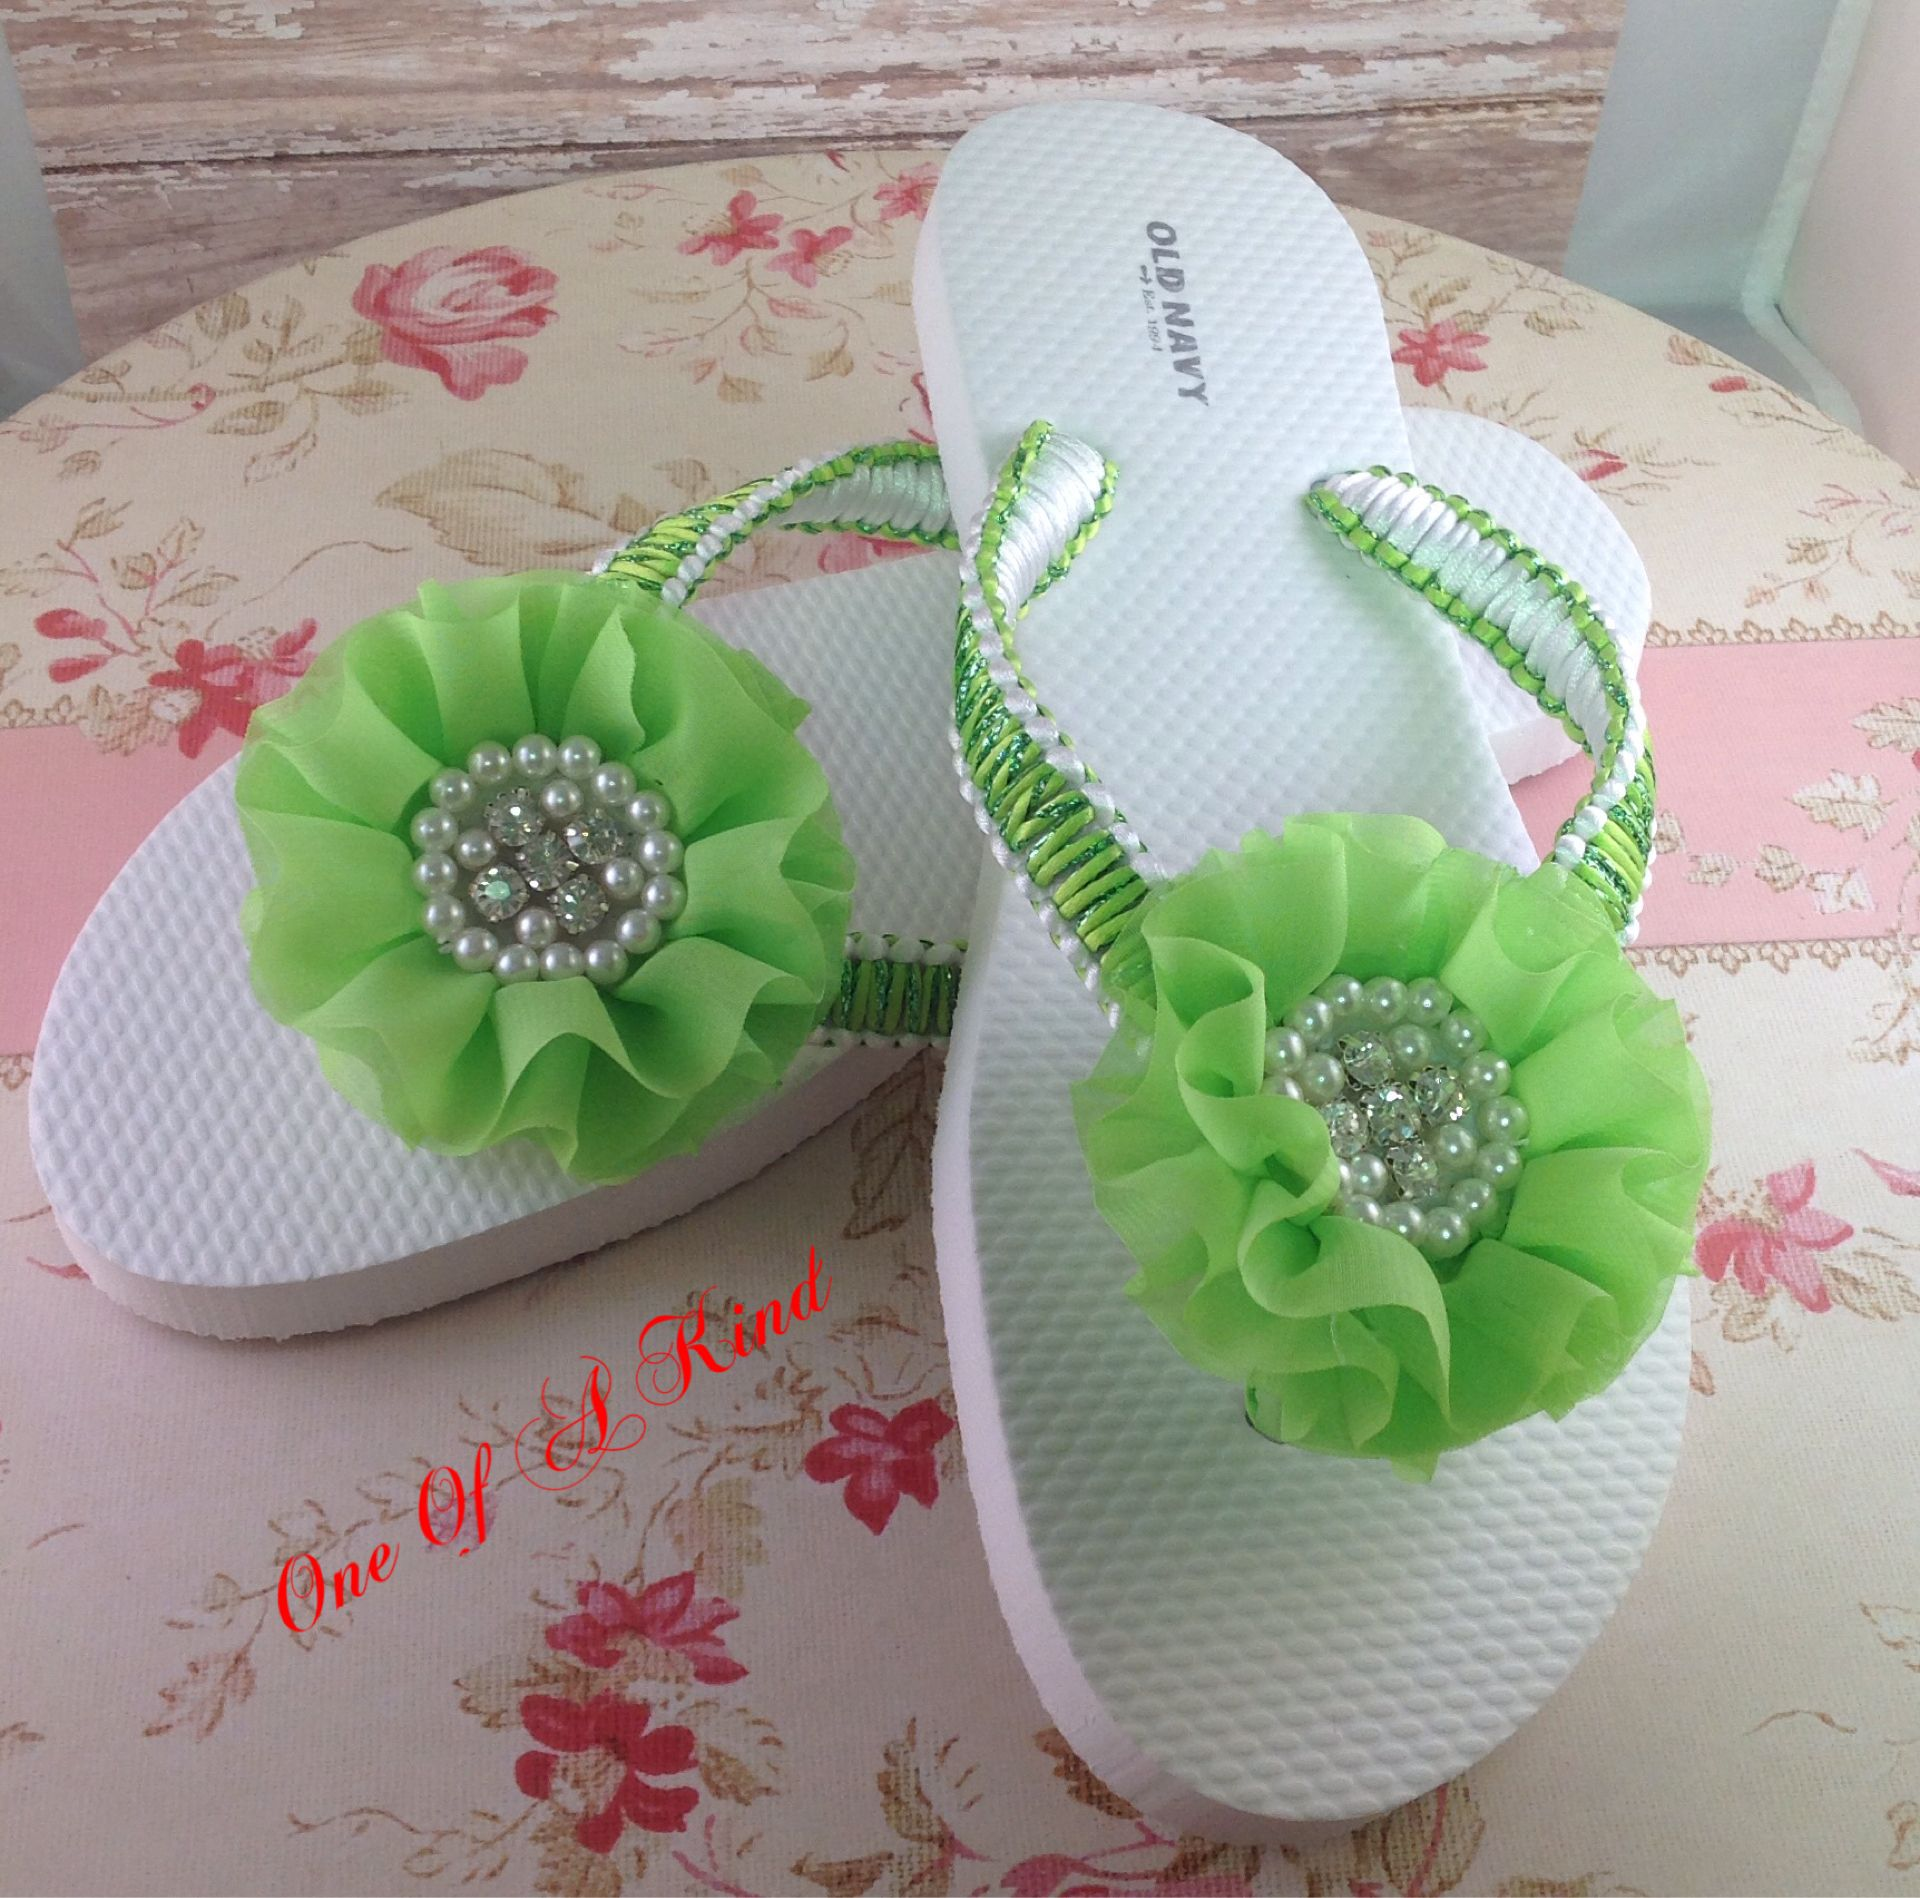 Green And White Flip Flops In Macrame With A Beaded Chiffon Fancy